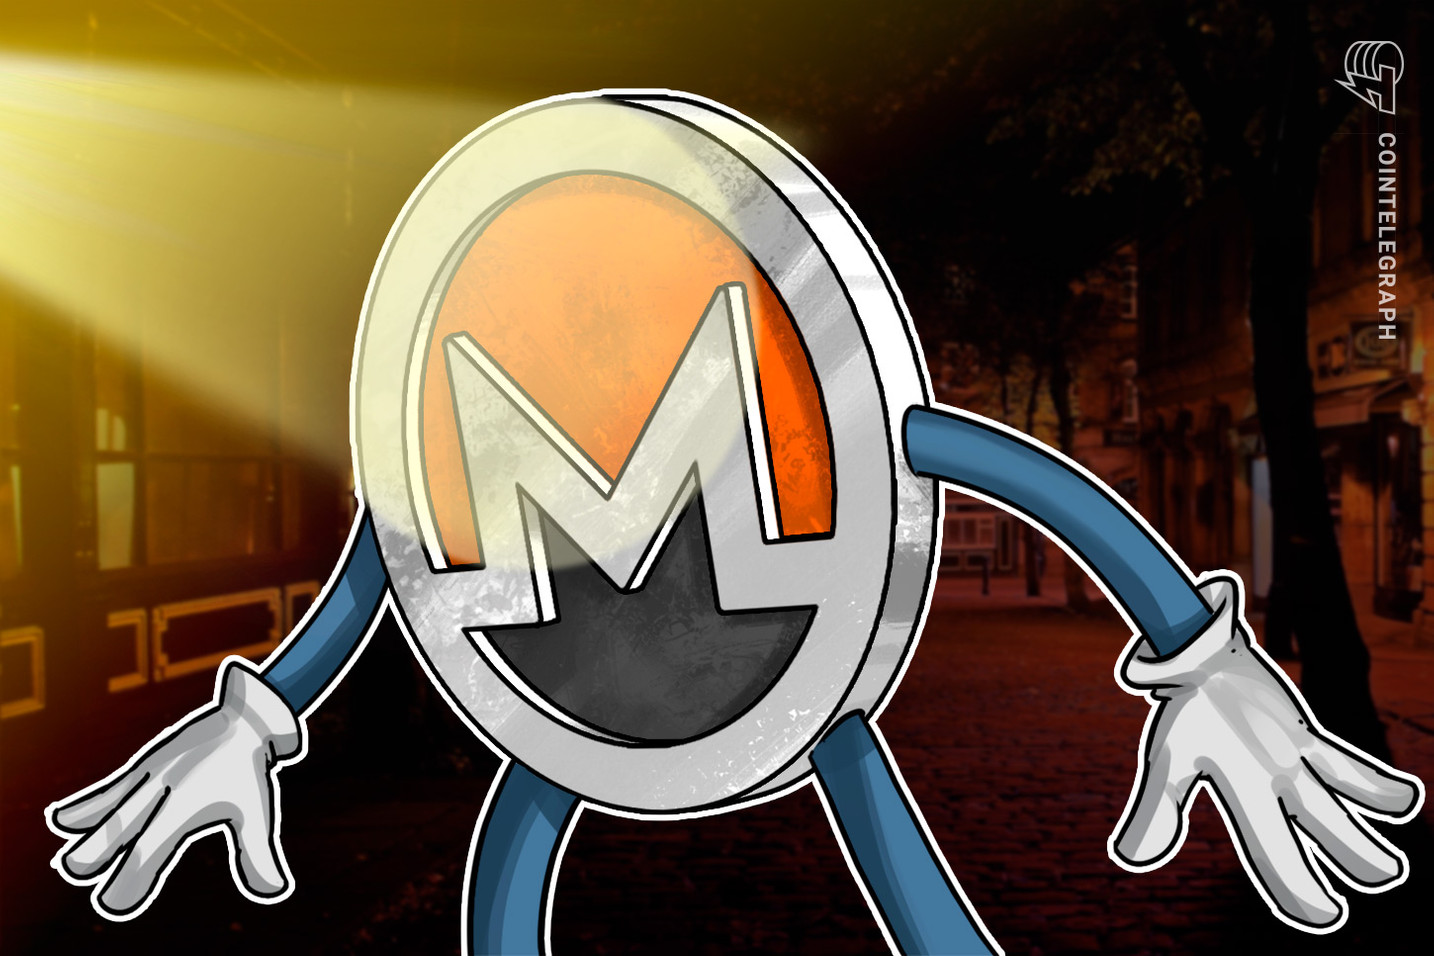 XMR workgroup says IRS should study Monero — not try to break it